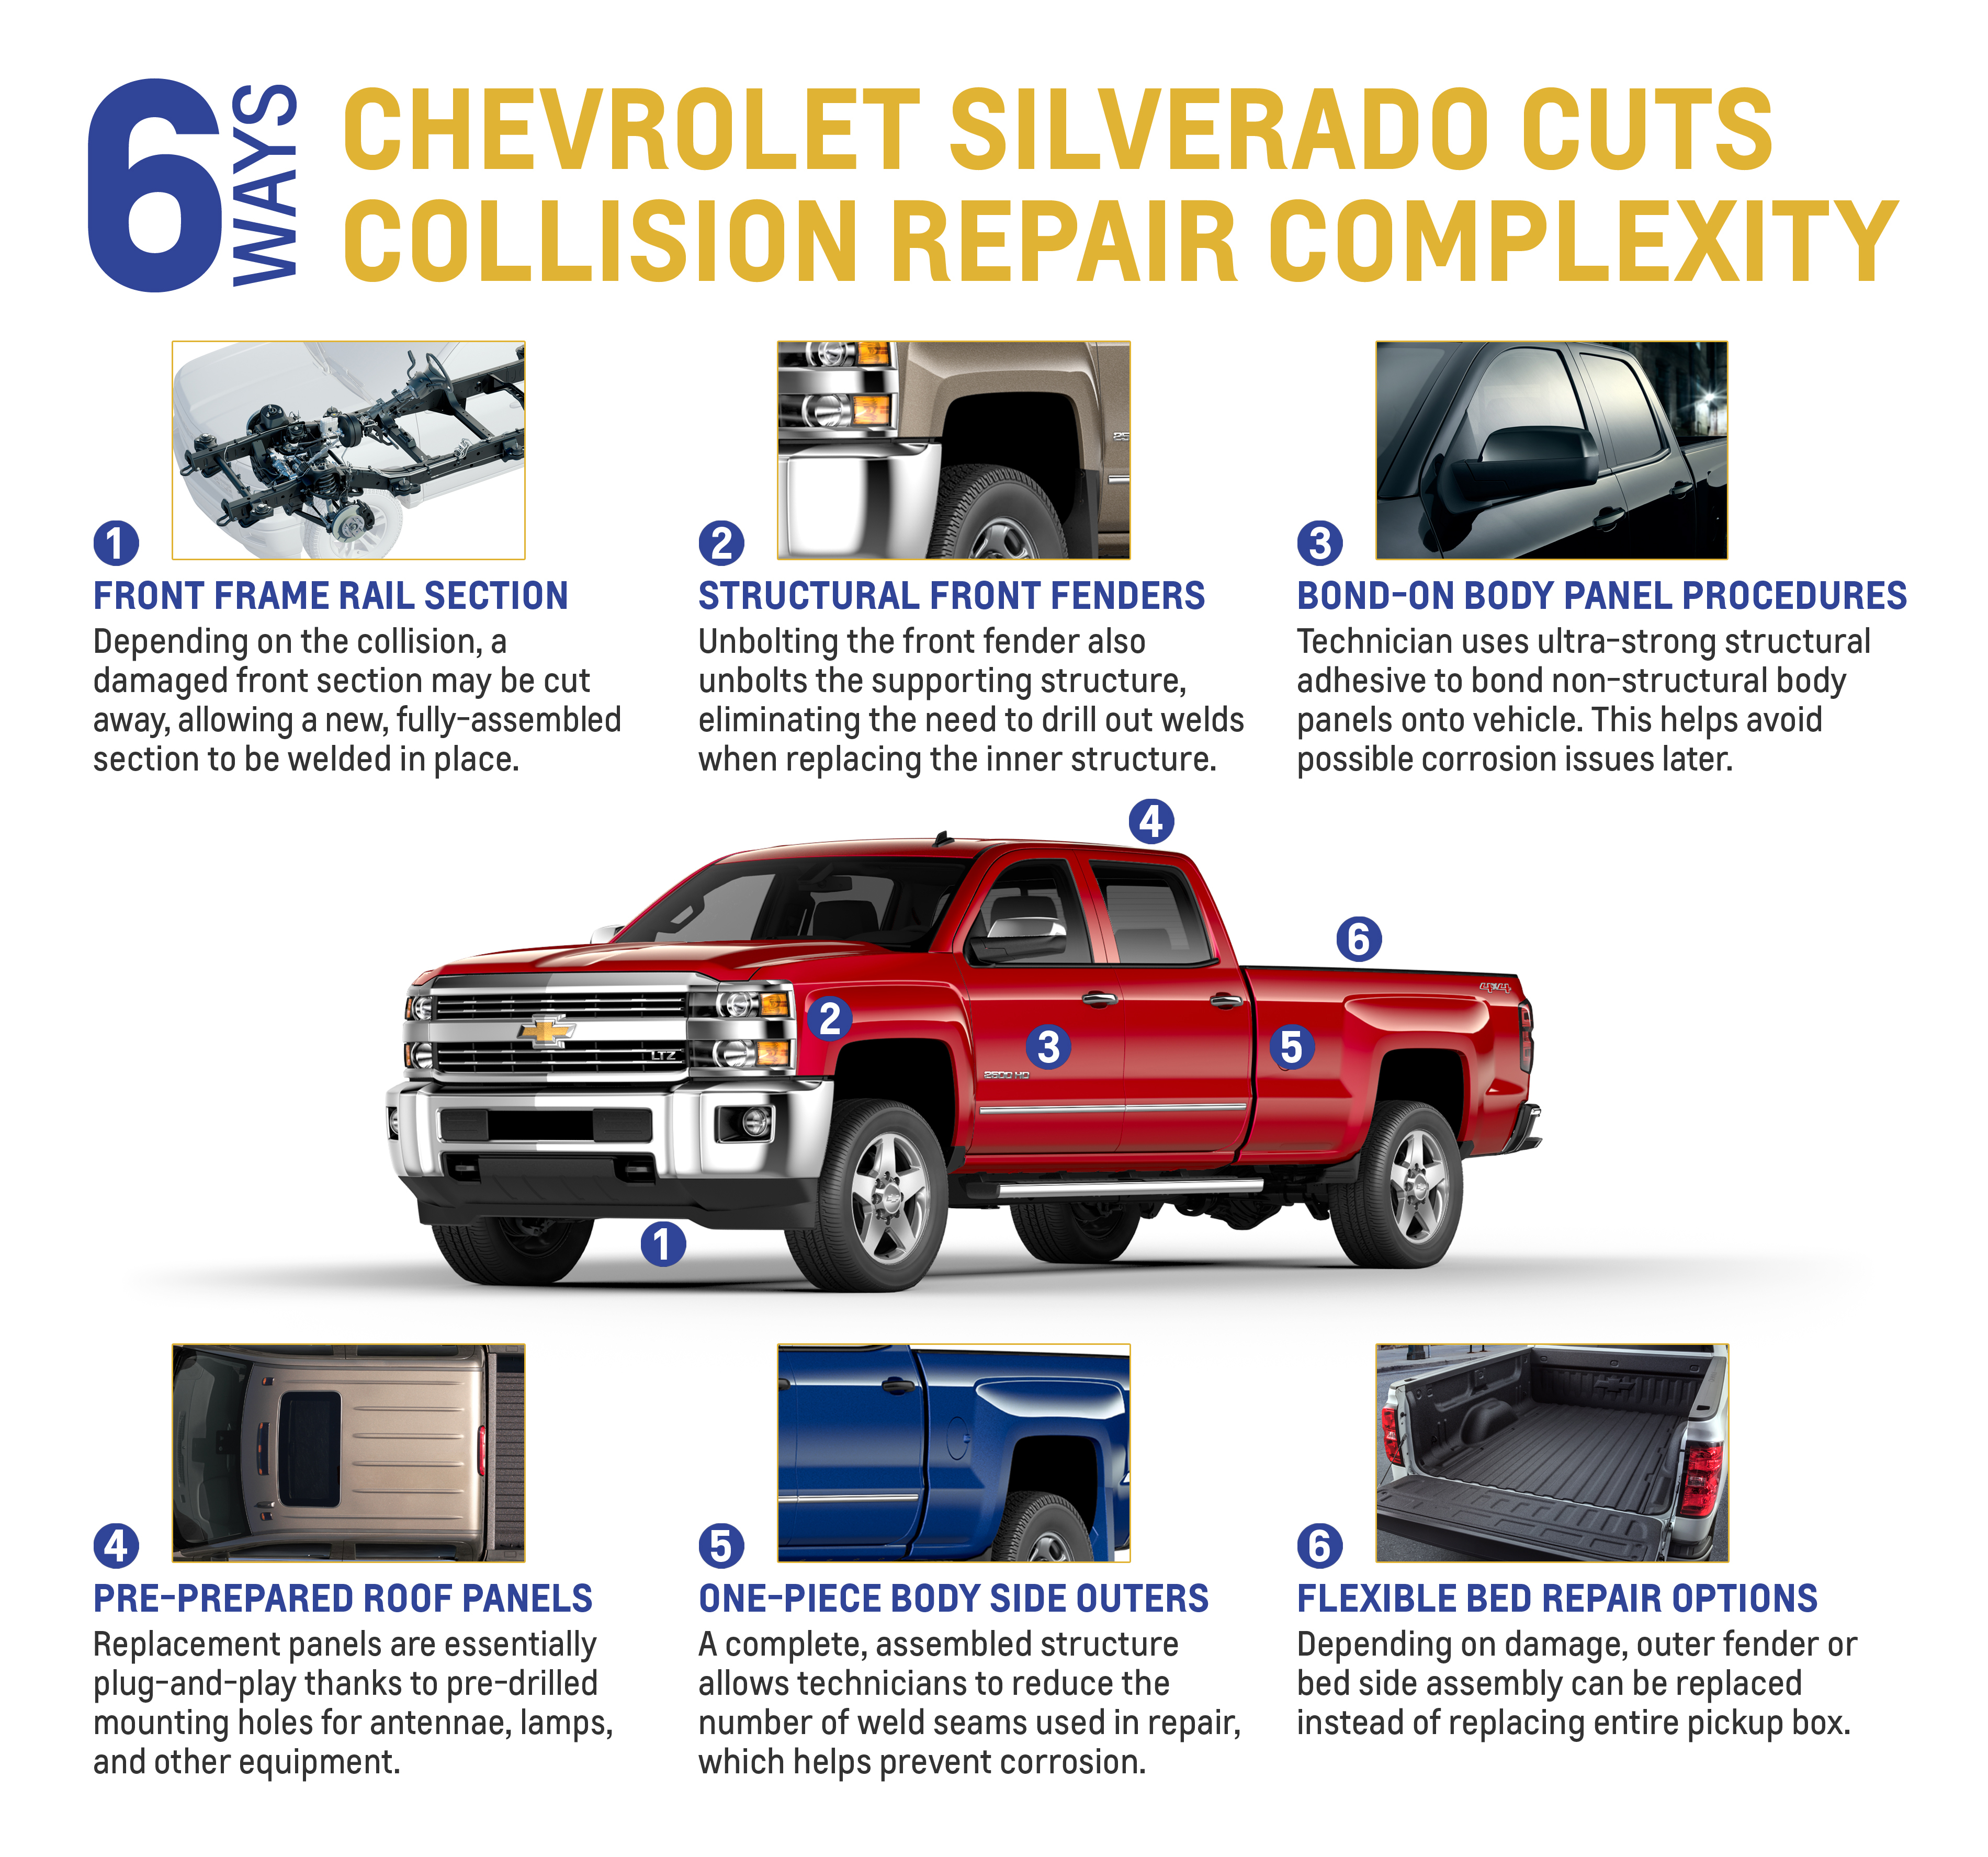 Gm details remove and replace methods for chevrolet silverado general motors solution to repair of the 2015 chevrolet silverado detailed in a monday news release is the remove and replace format that seems to be the freerunsca Images